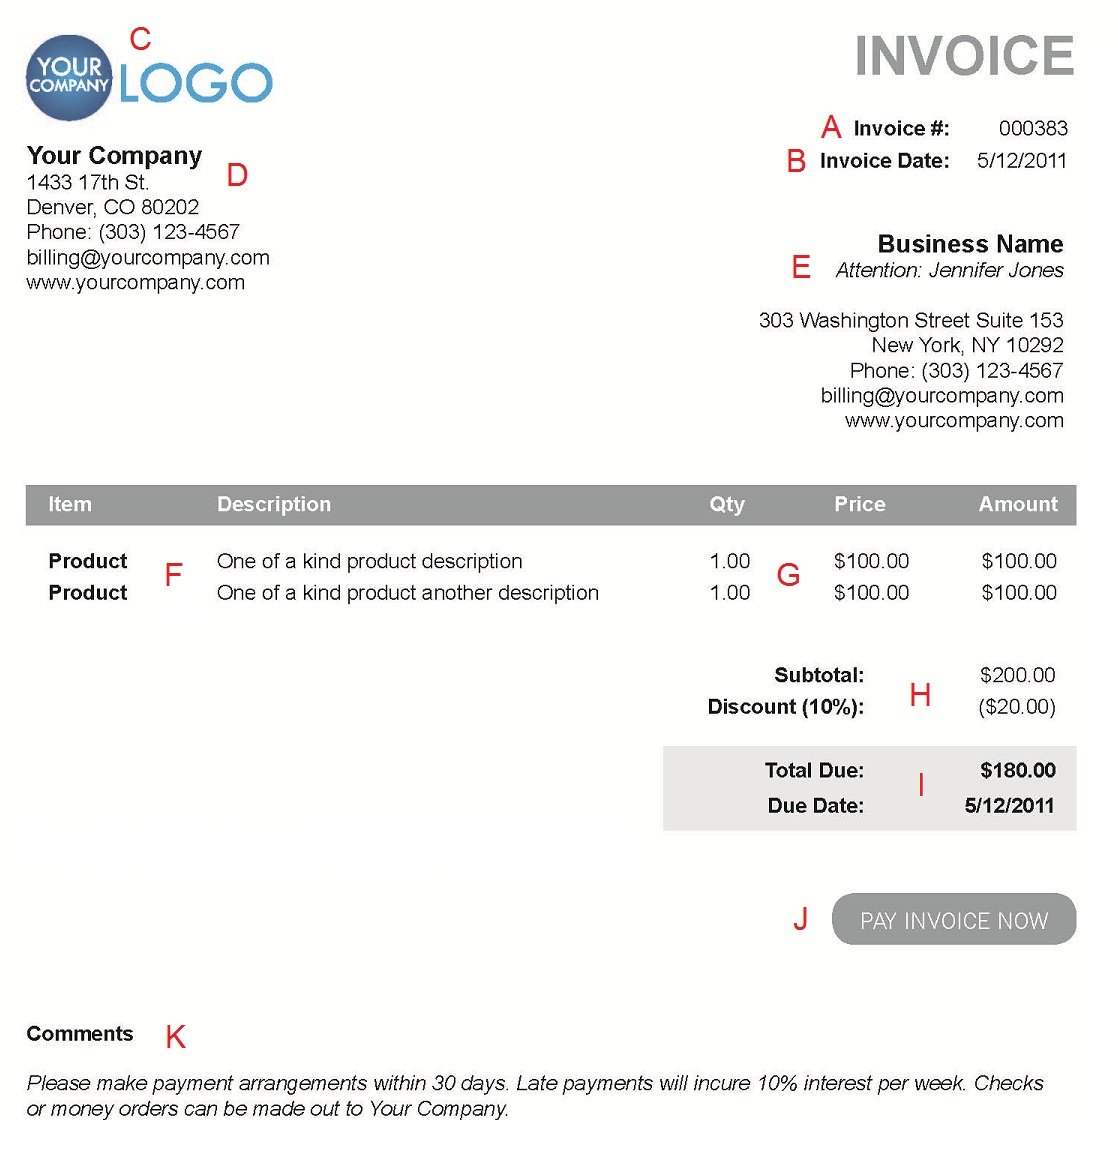 Hucareus  Sweet The  Different Sections Of An Electronic Payment Invoice With Fetching A  With Astounding Invoicing Software Uk Also Invoice Discounting And Factoring In Addition Tax Invoice Australia And What Is On An Invoice As Well As Sample Invoice For Consulting Additionally Service Tax Invoice Format From Paysimplecom With Hucareus  Fetching The  Different Sections Of An Electronic Payment Invoice With Astounding A  And Sweet Invoicing Software Uk Also Invoice Discounting And Factoring In Addition Tax Invoice Australia From Paysimplecom